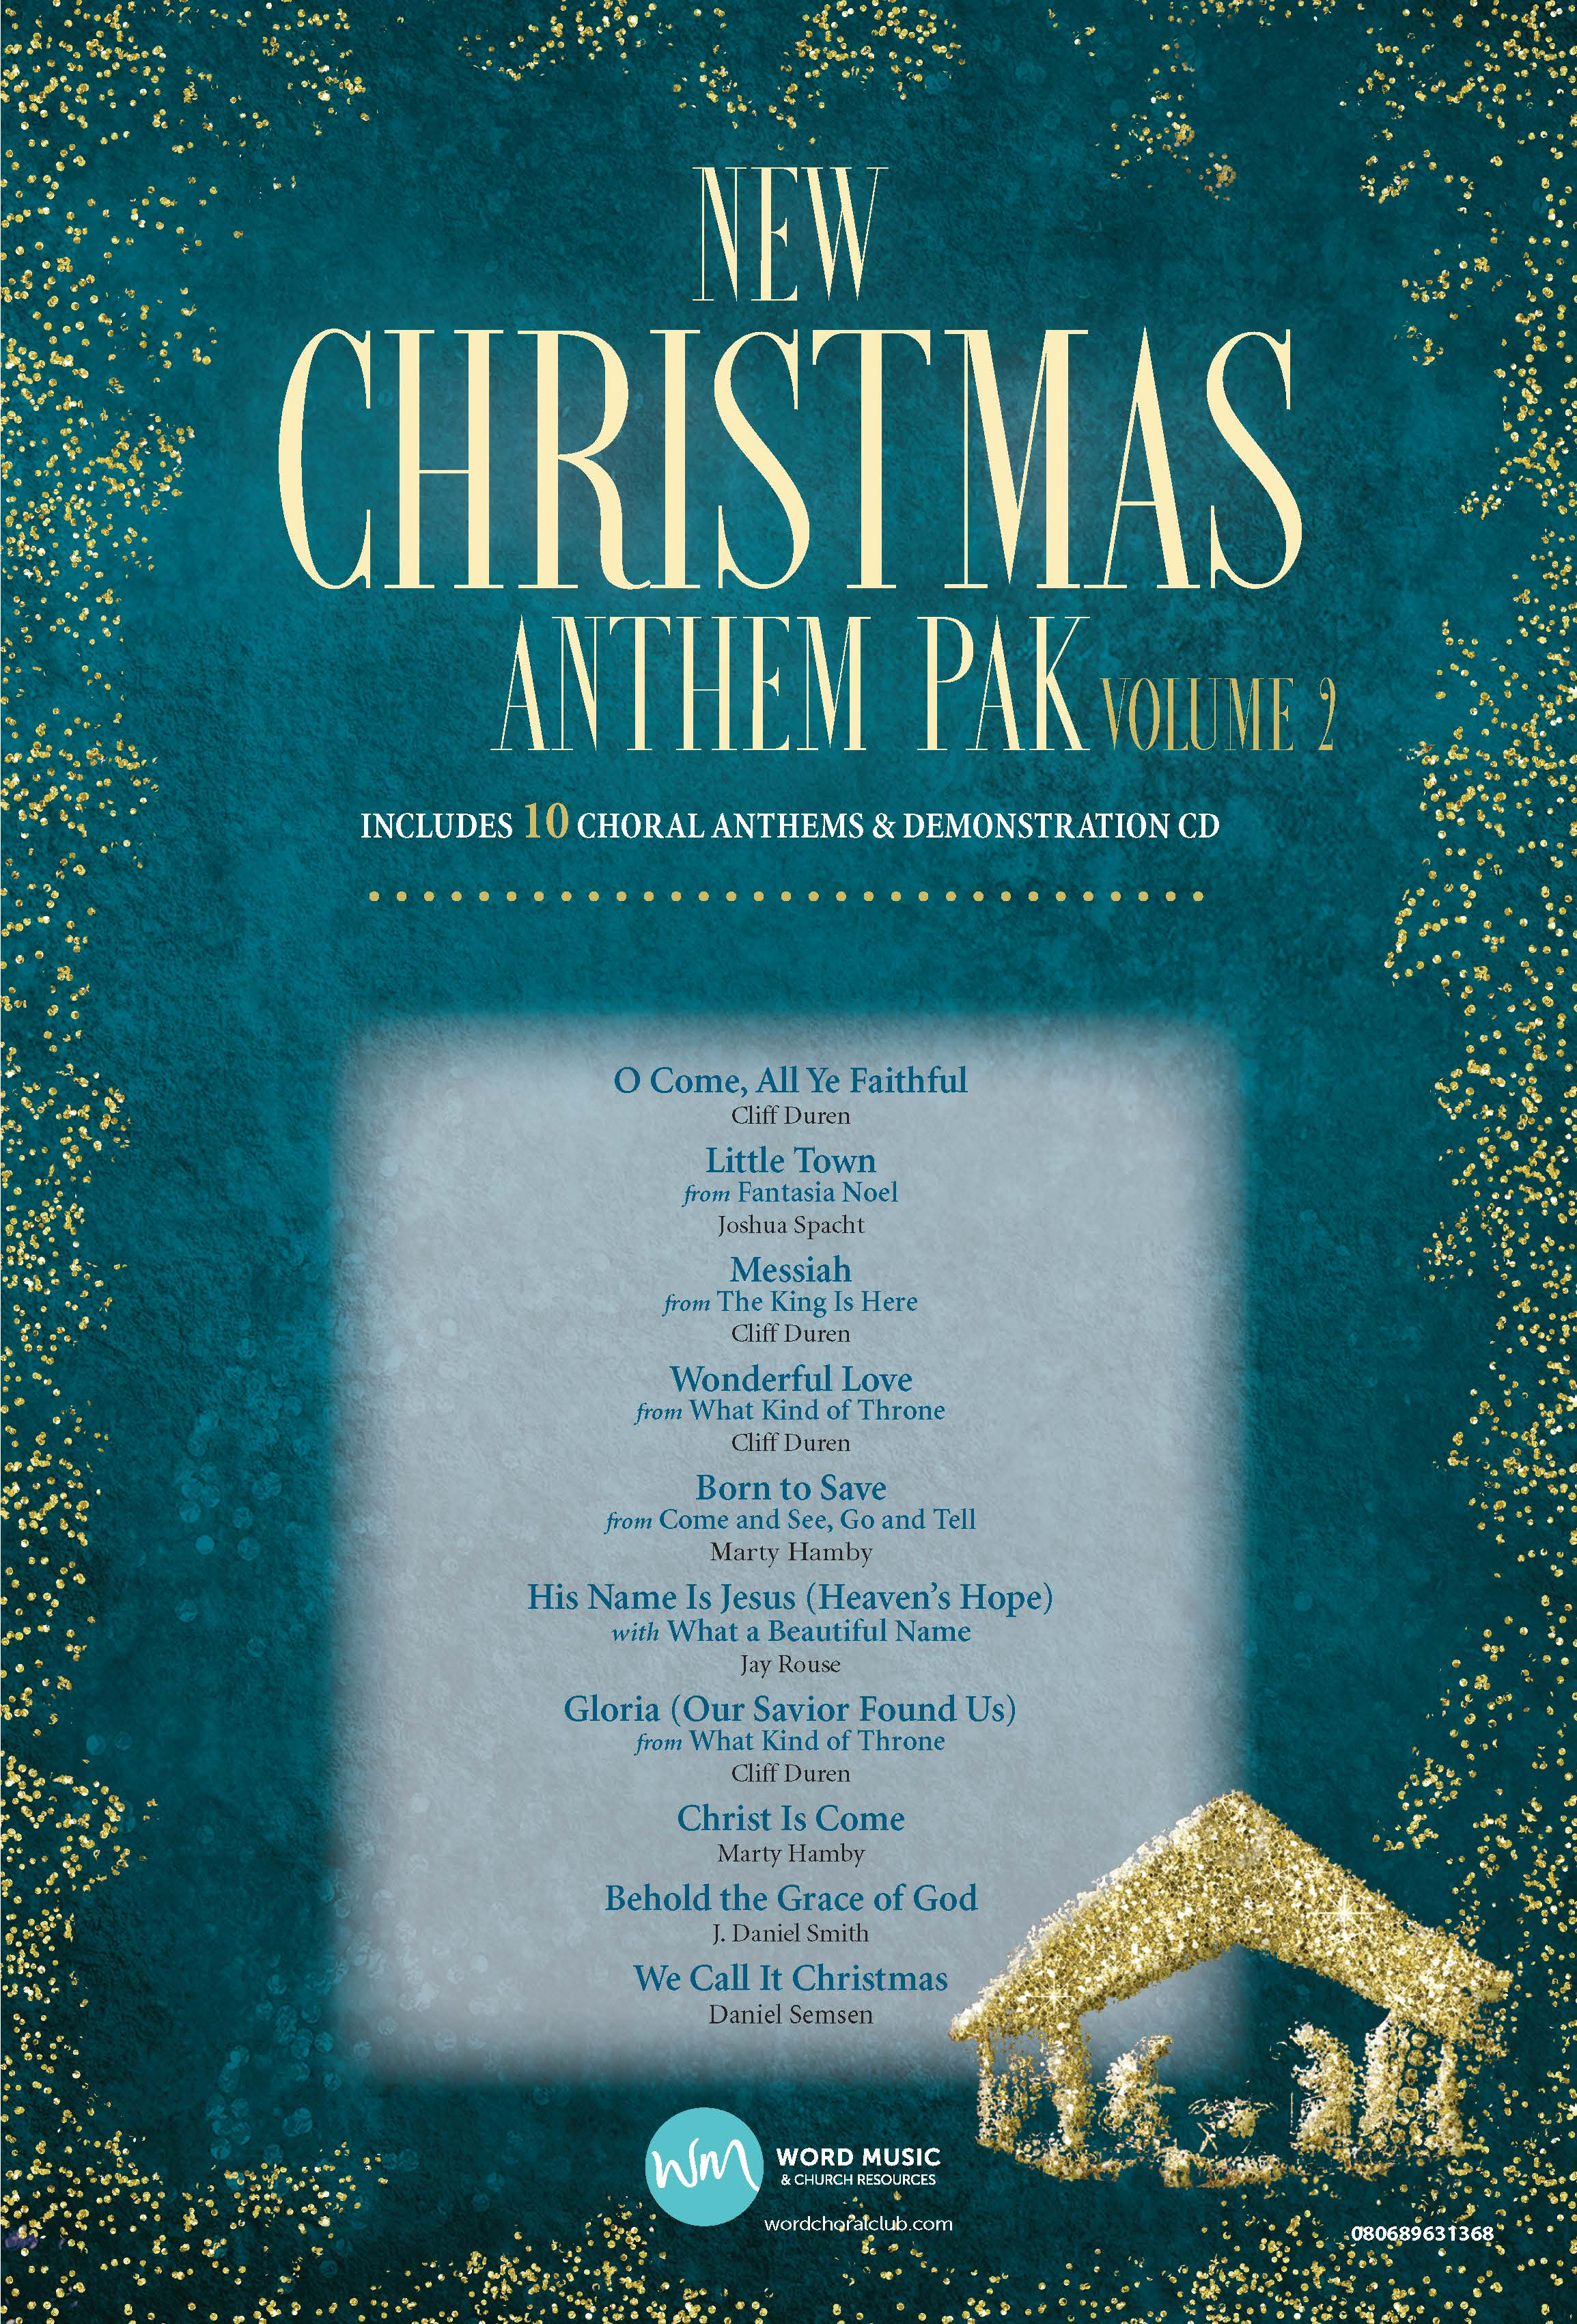 New Christmas Anthem Pak Vol 2